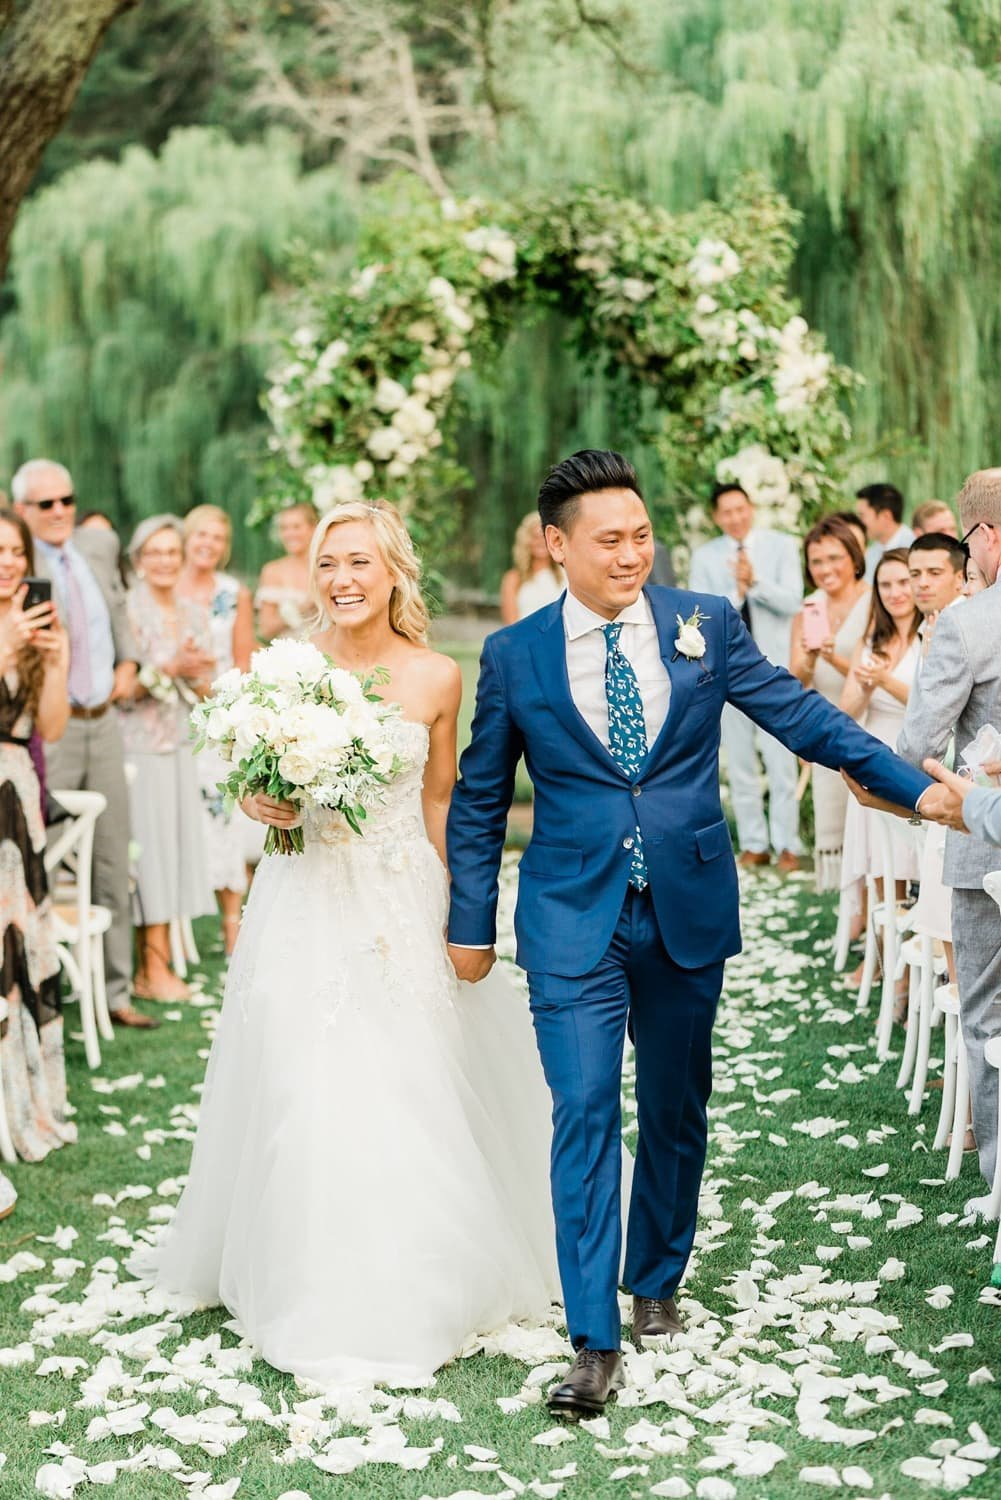 jon chu and kristin hodge wedding photos